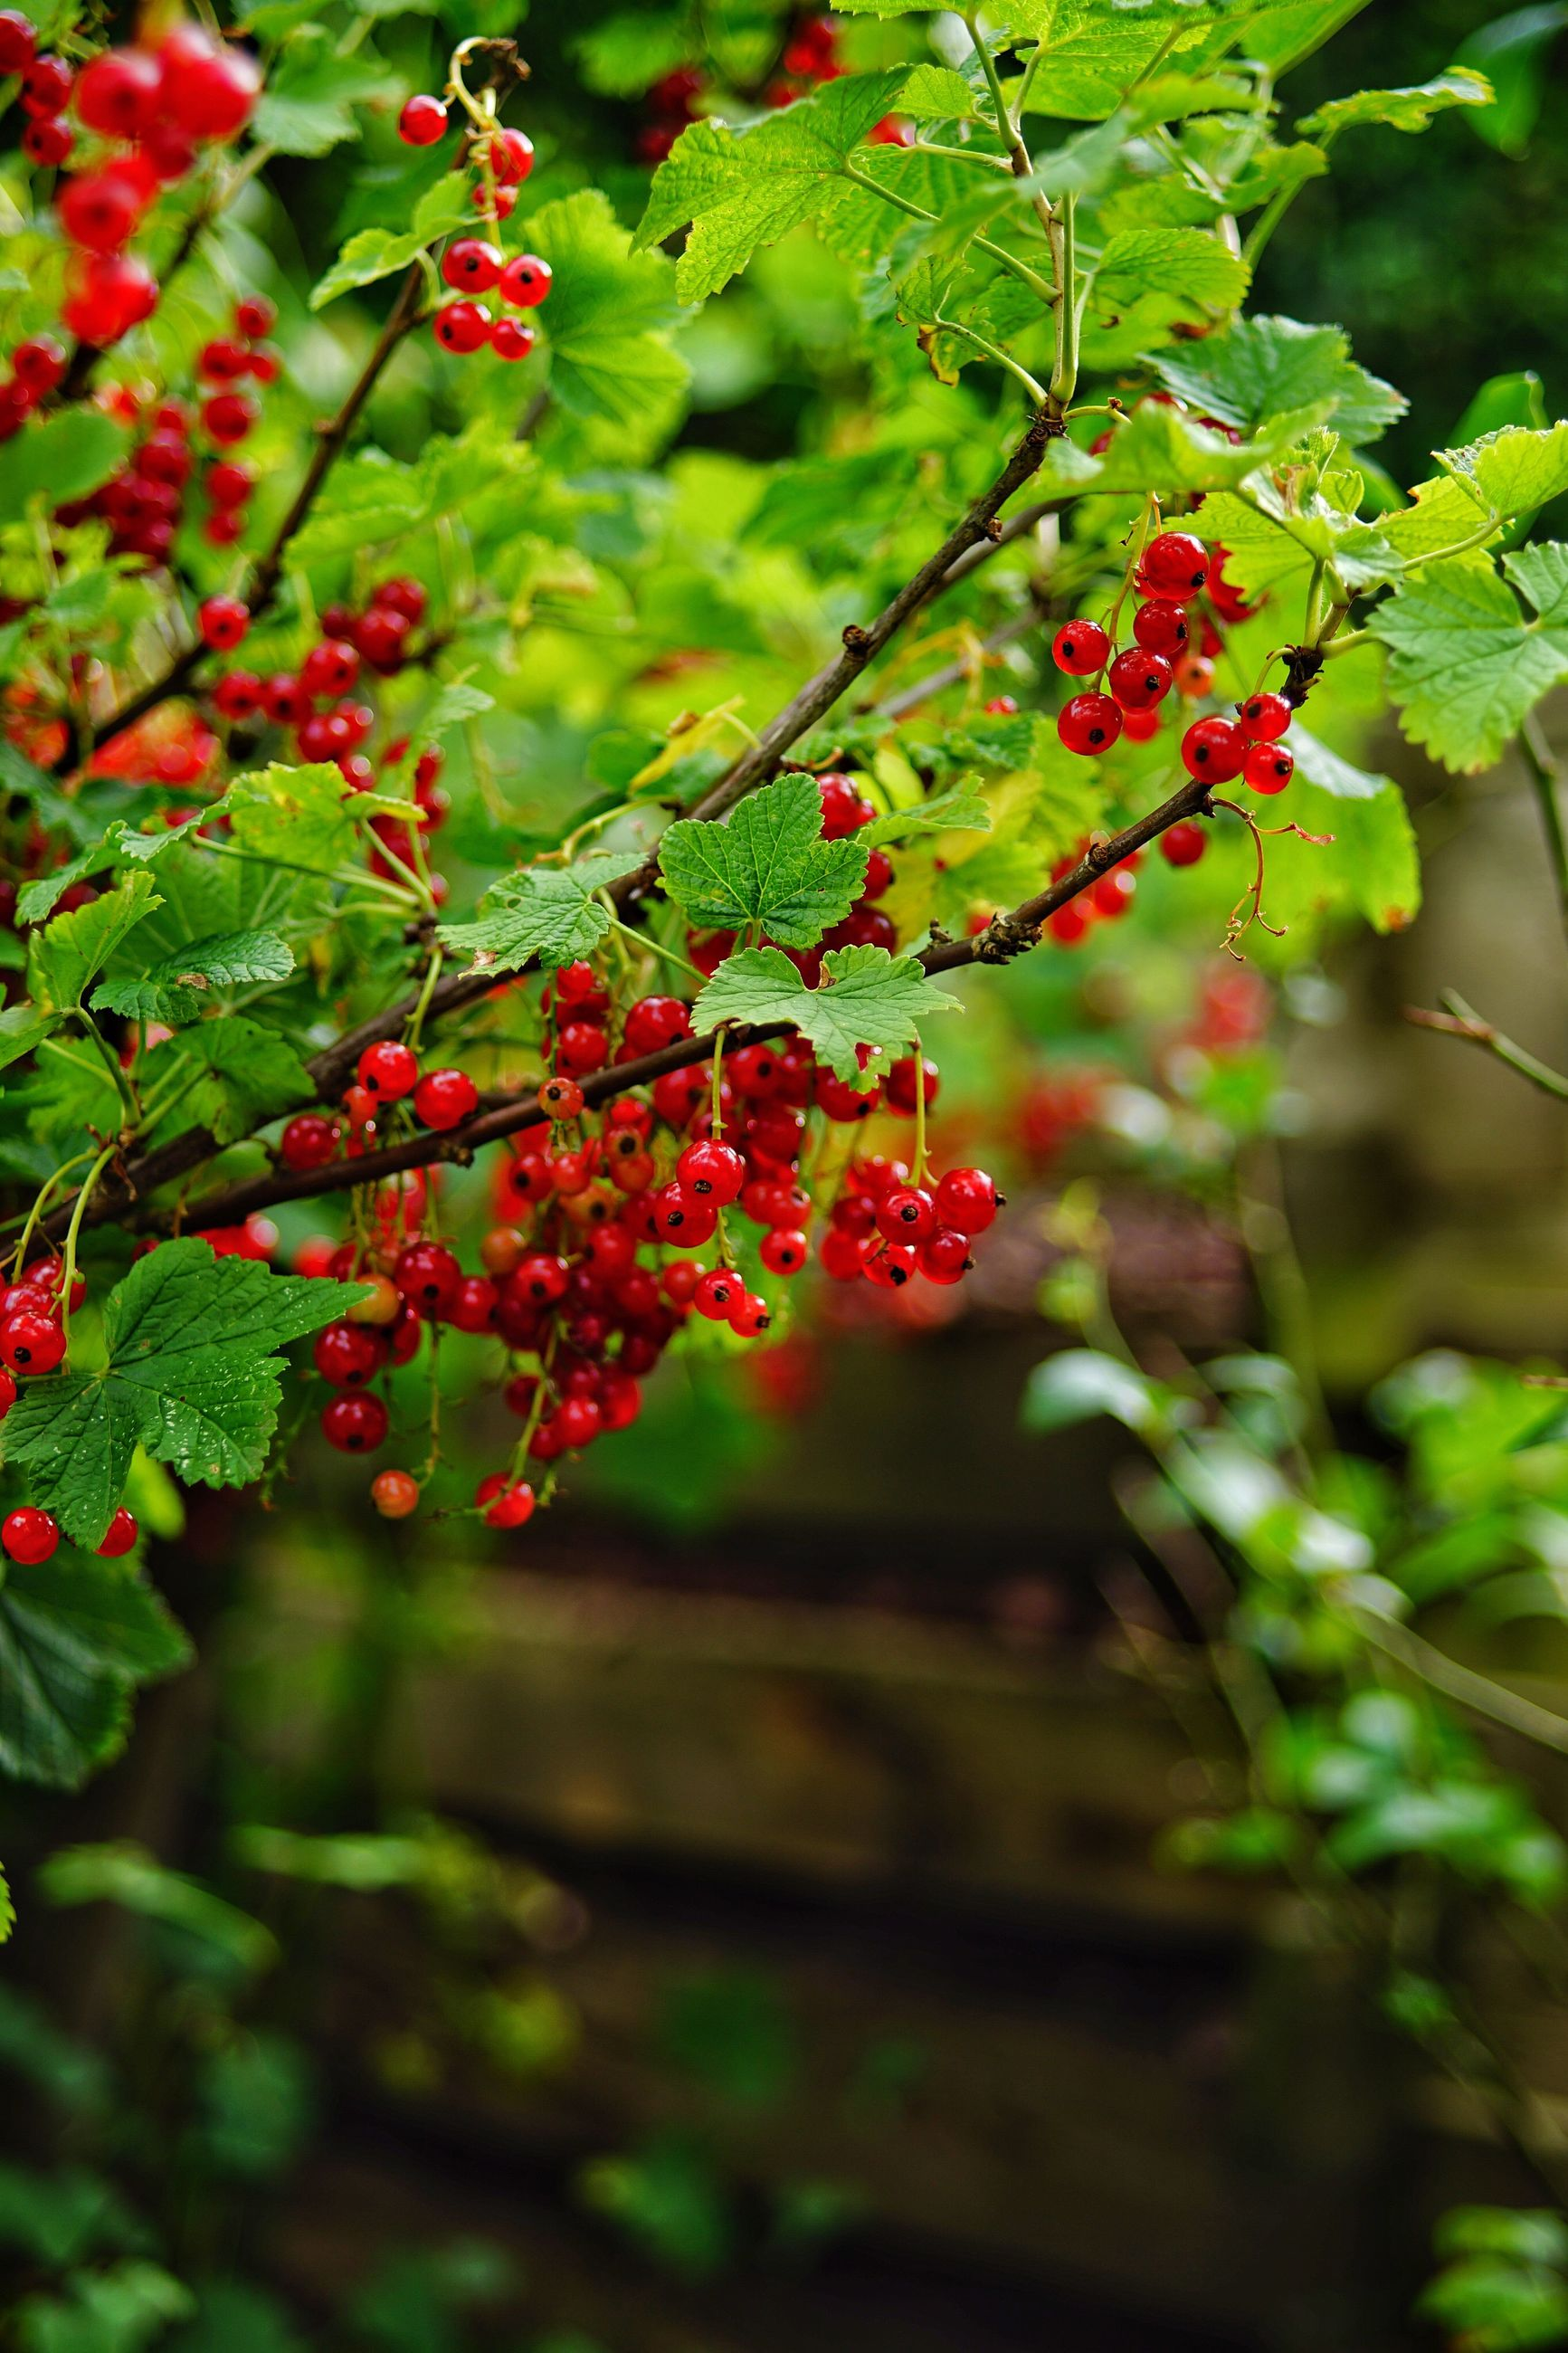 fruit, red, growth, berry fruit, food and drink, growing, rowanberry, green color, outdoors, nature, no people, leaf, plant, day, focus on foreground, beauty in nature, food, tree, freshness, healthy eating, branch, close-up